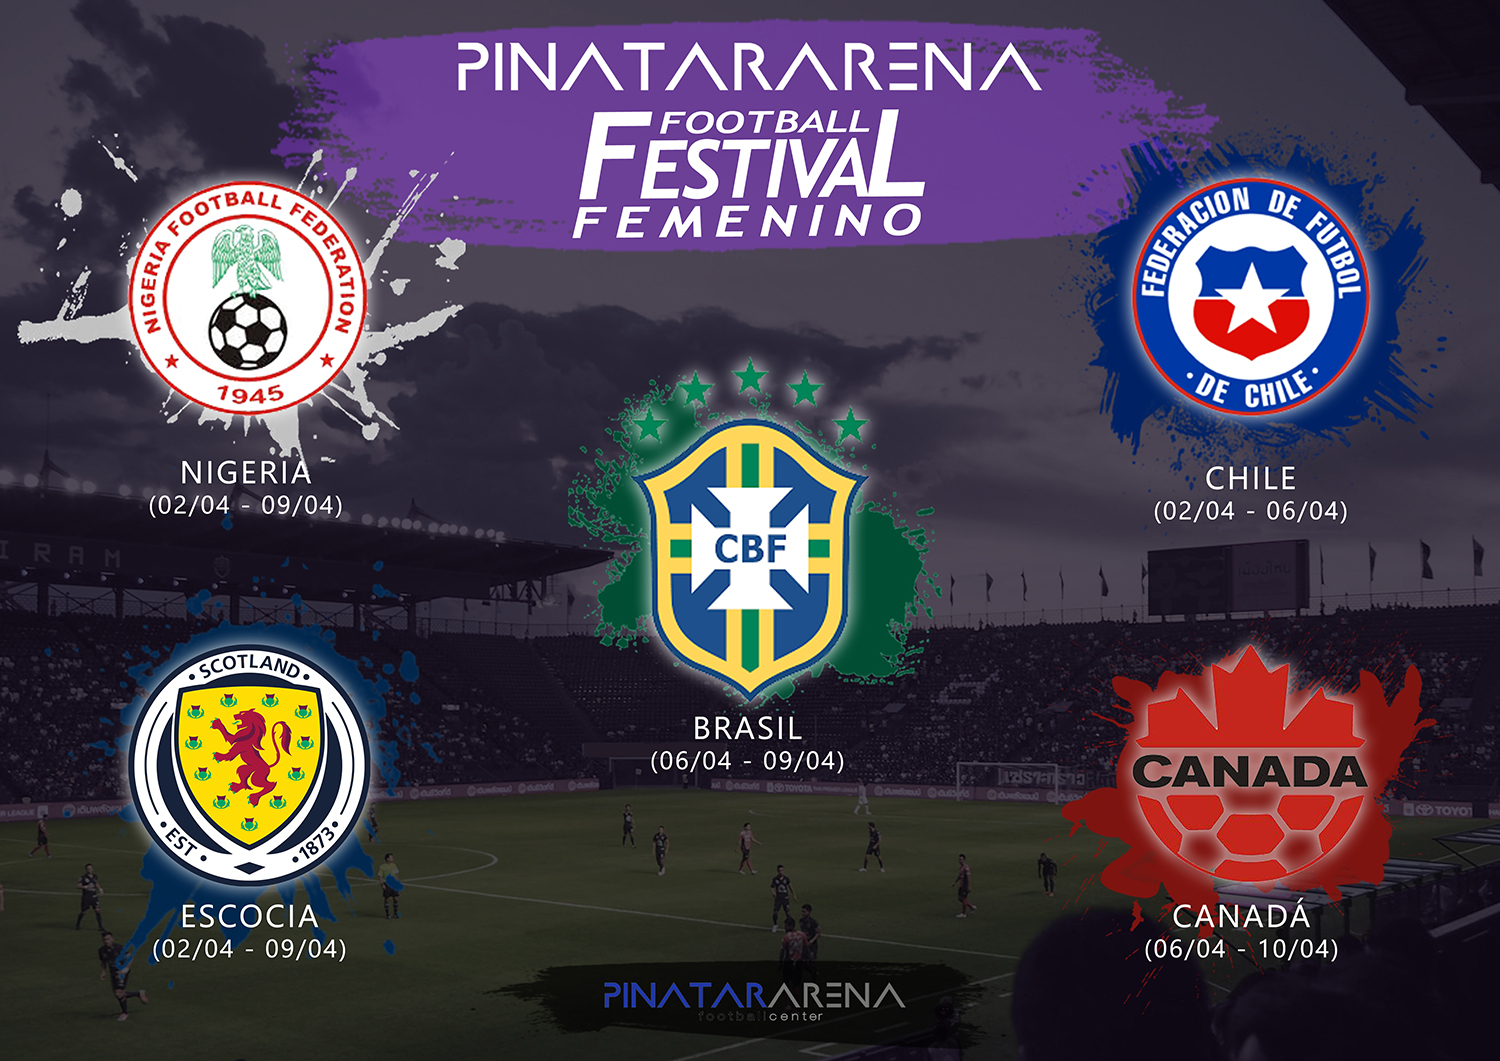 Scotland at Pinatar to prepare for Women's World Cup